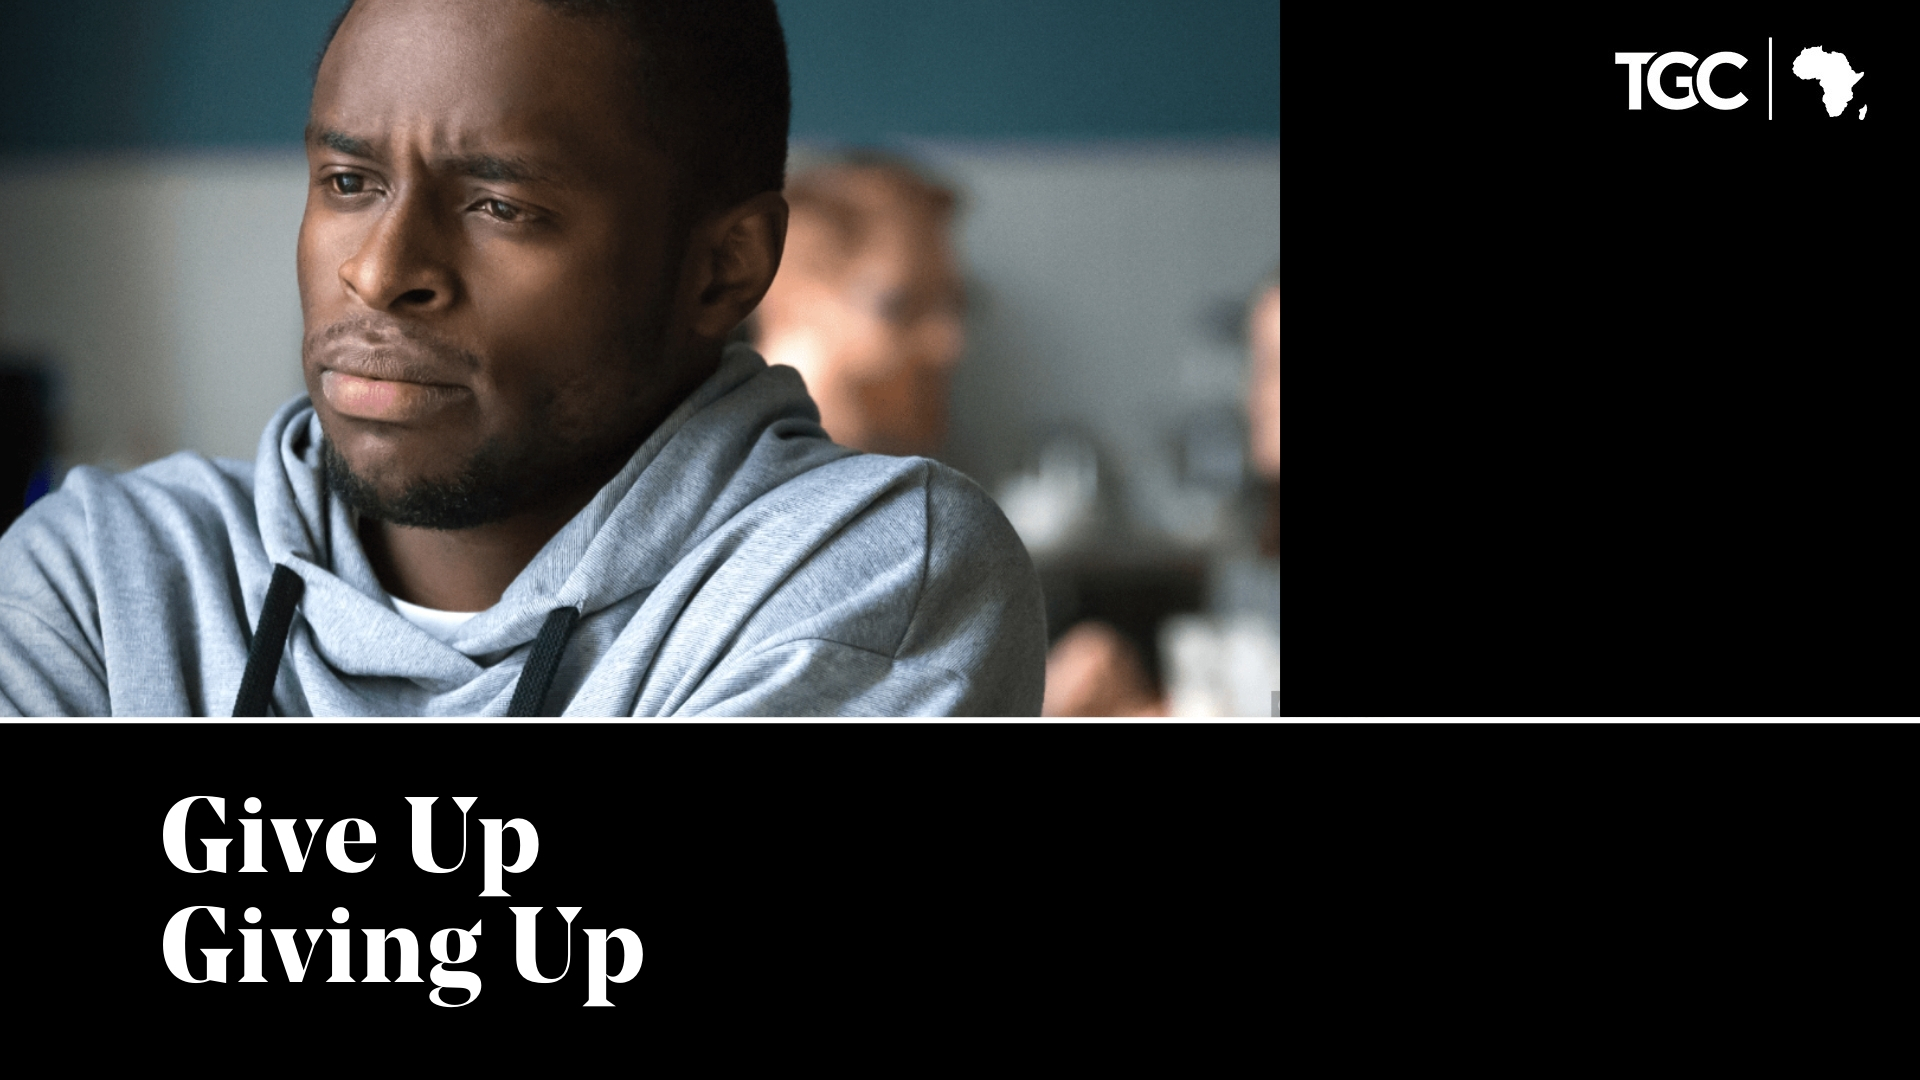 Give Up Giving Up - TGC Africa Top Sermons of 2020